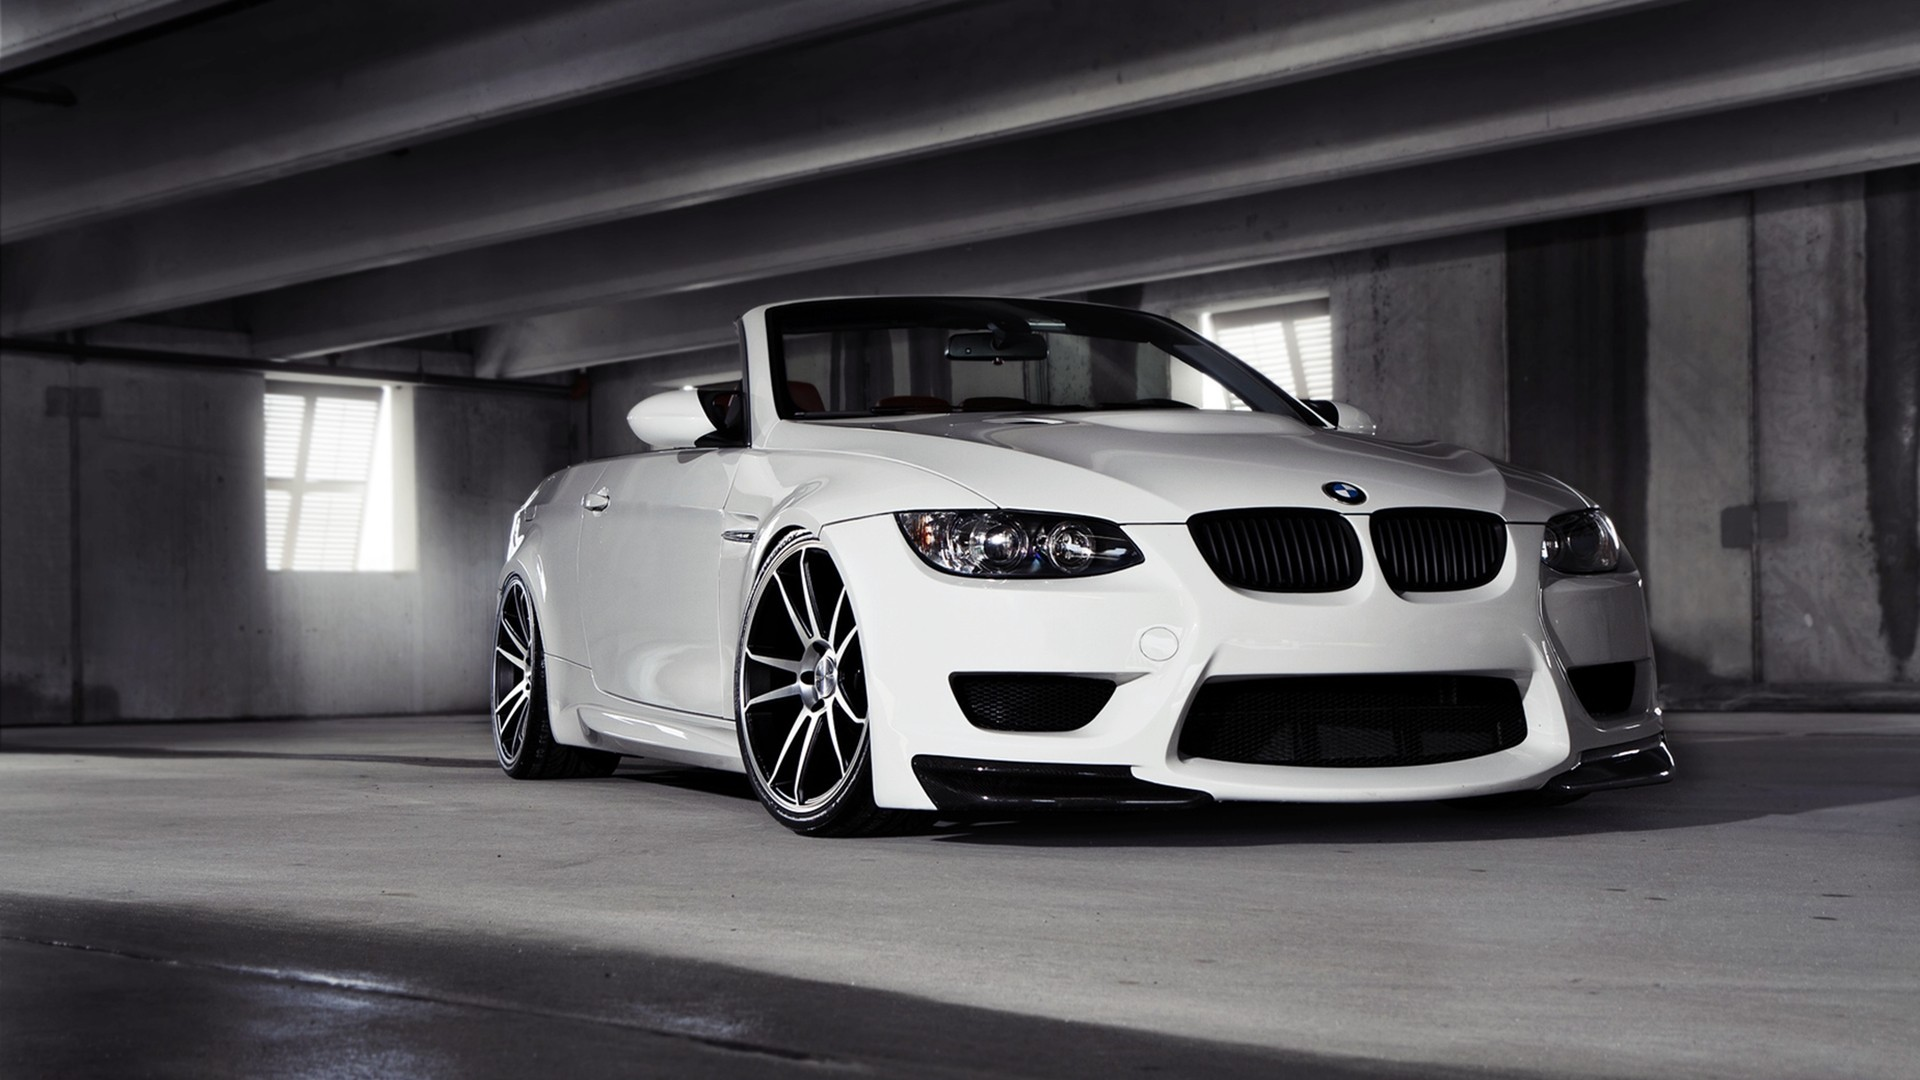 BMW m3 Convertible Wallpaper 21946